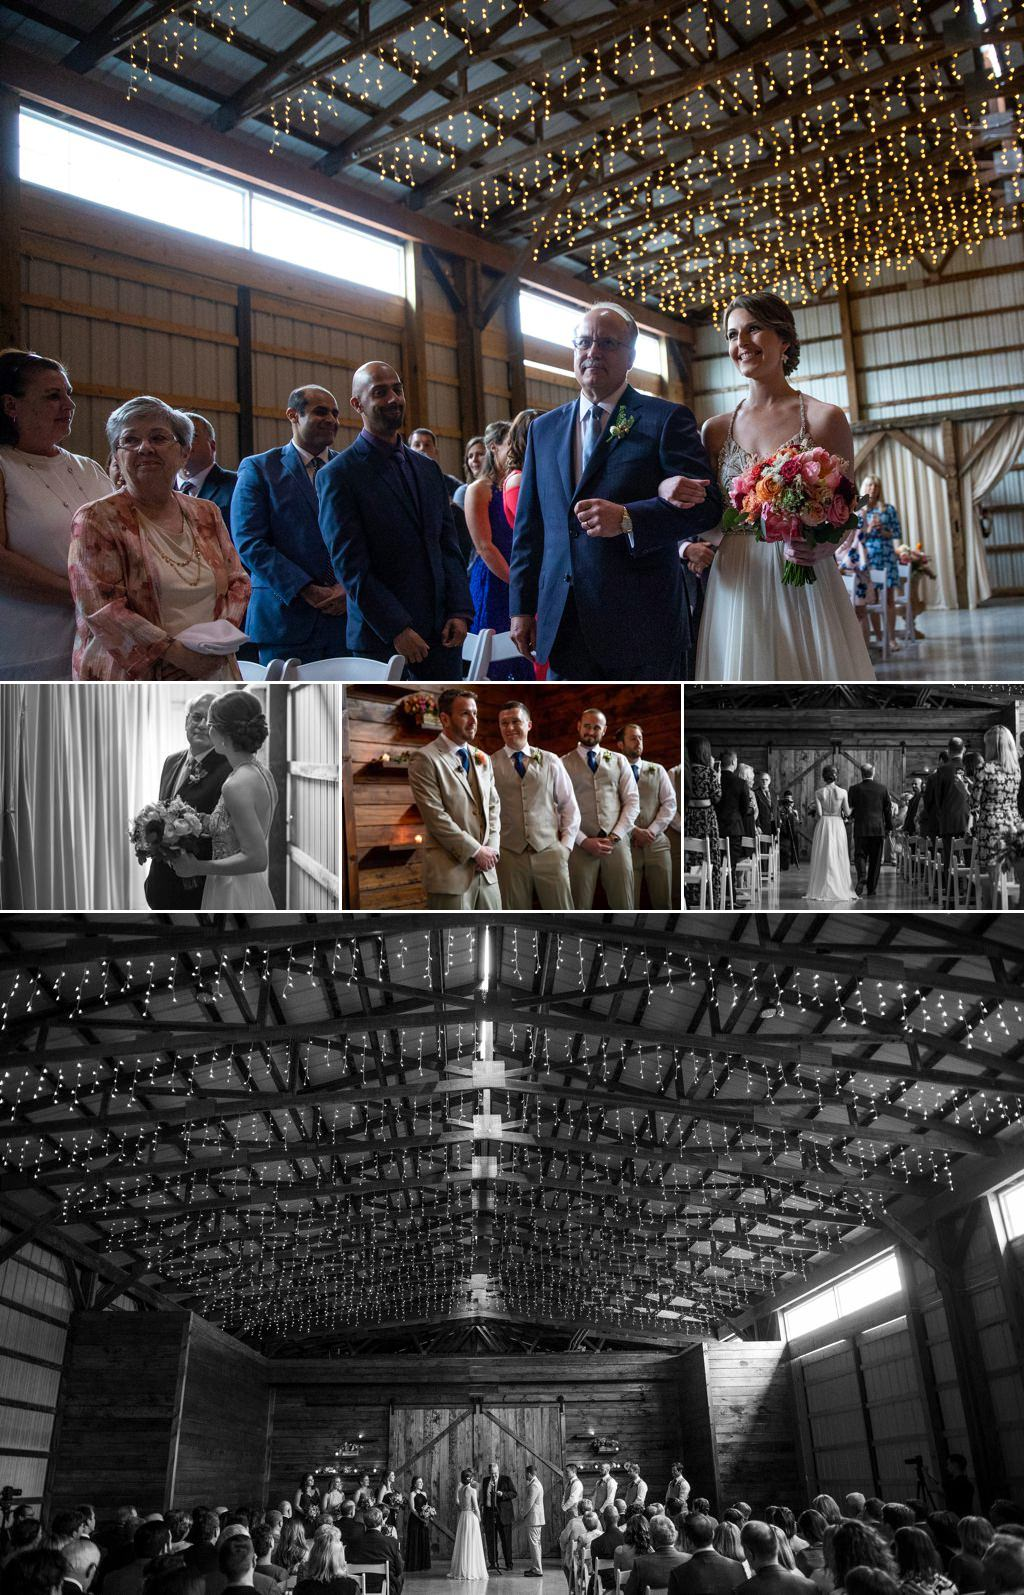 A bride walking down the aisle at her wedding at The Barn at Silverstone